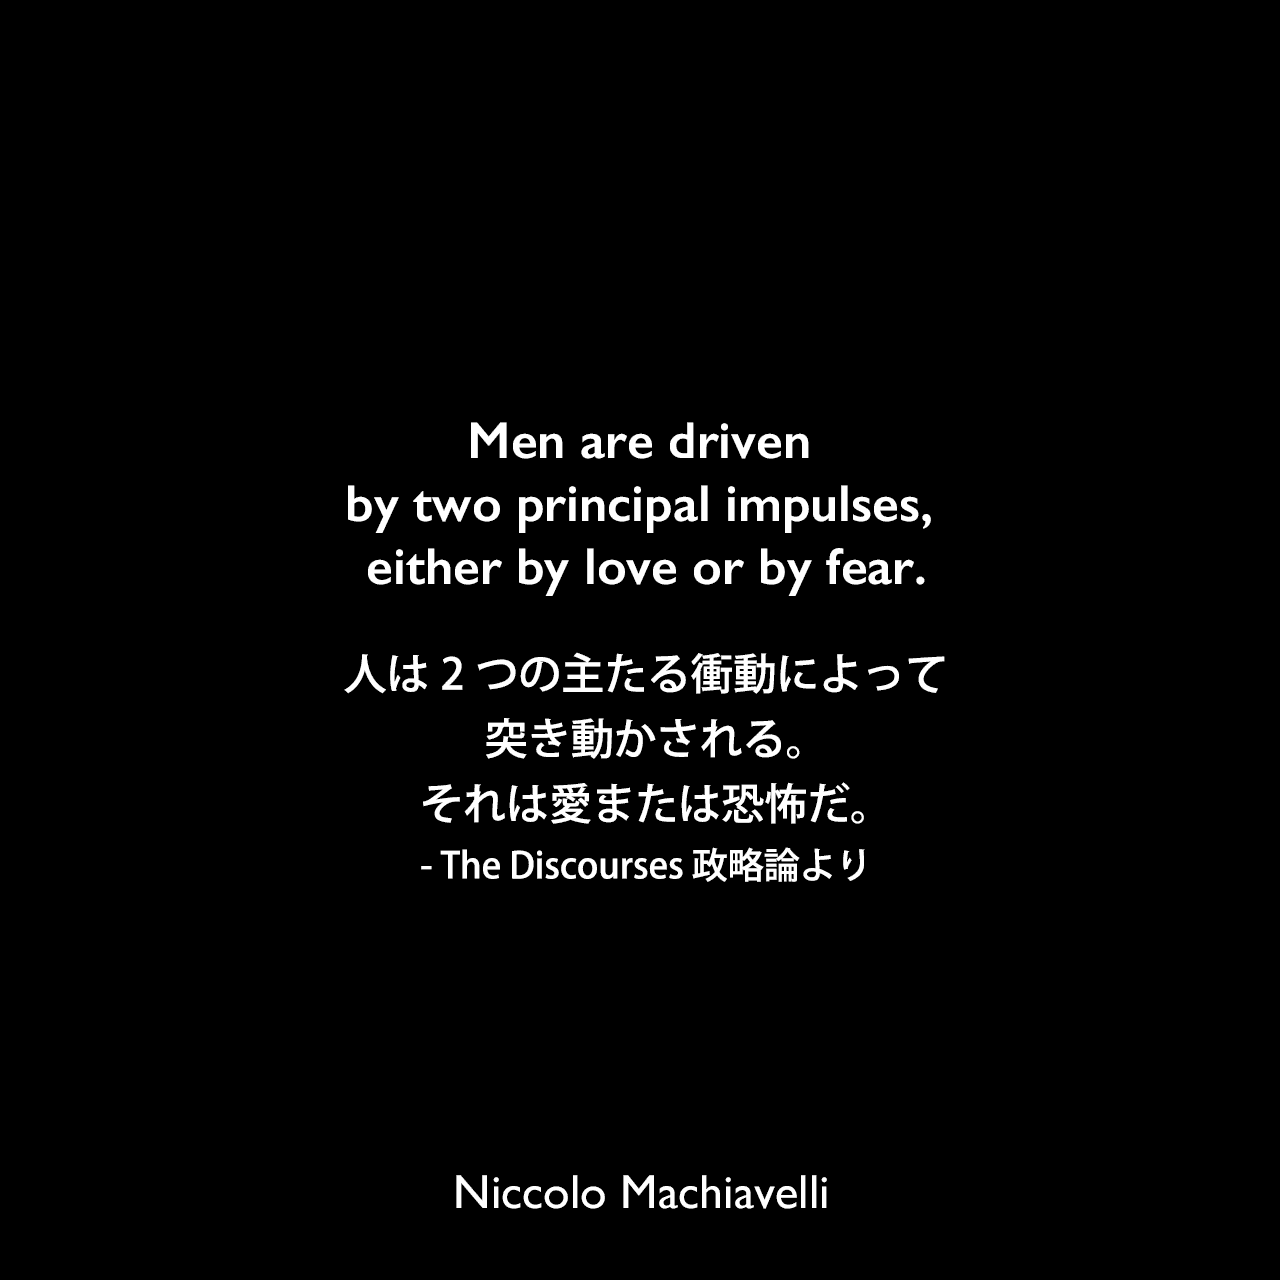 Men are driven by two principal impulses, either by love or by fear.人は2つの主たる衝動によって突き動かされる。それは愛または恐怖だ。- The Discourses 政略論よりNiccolo Machiavelli